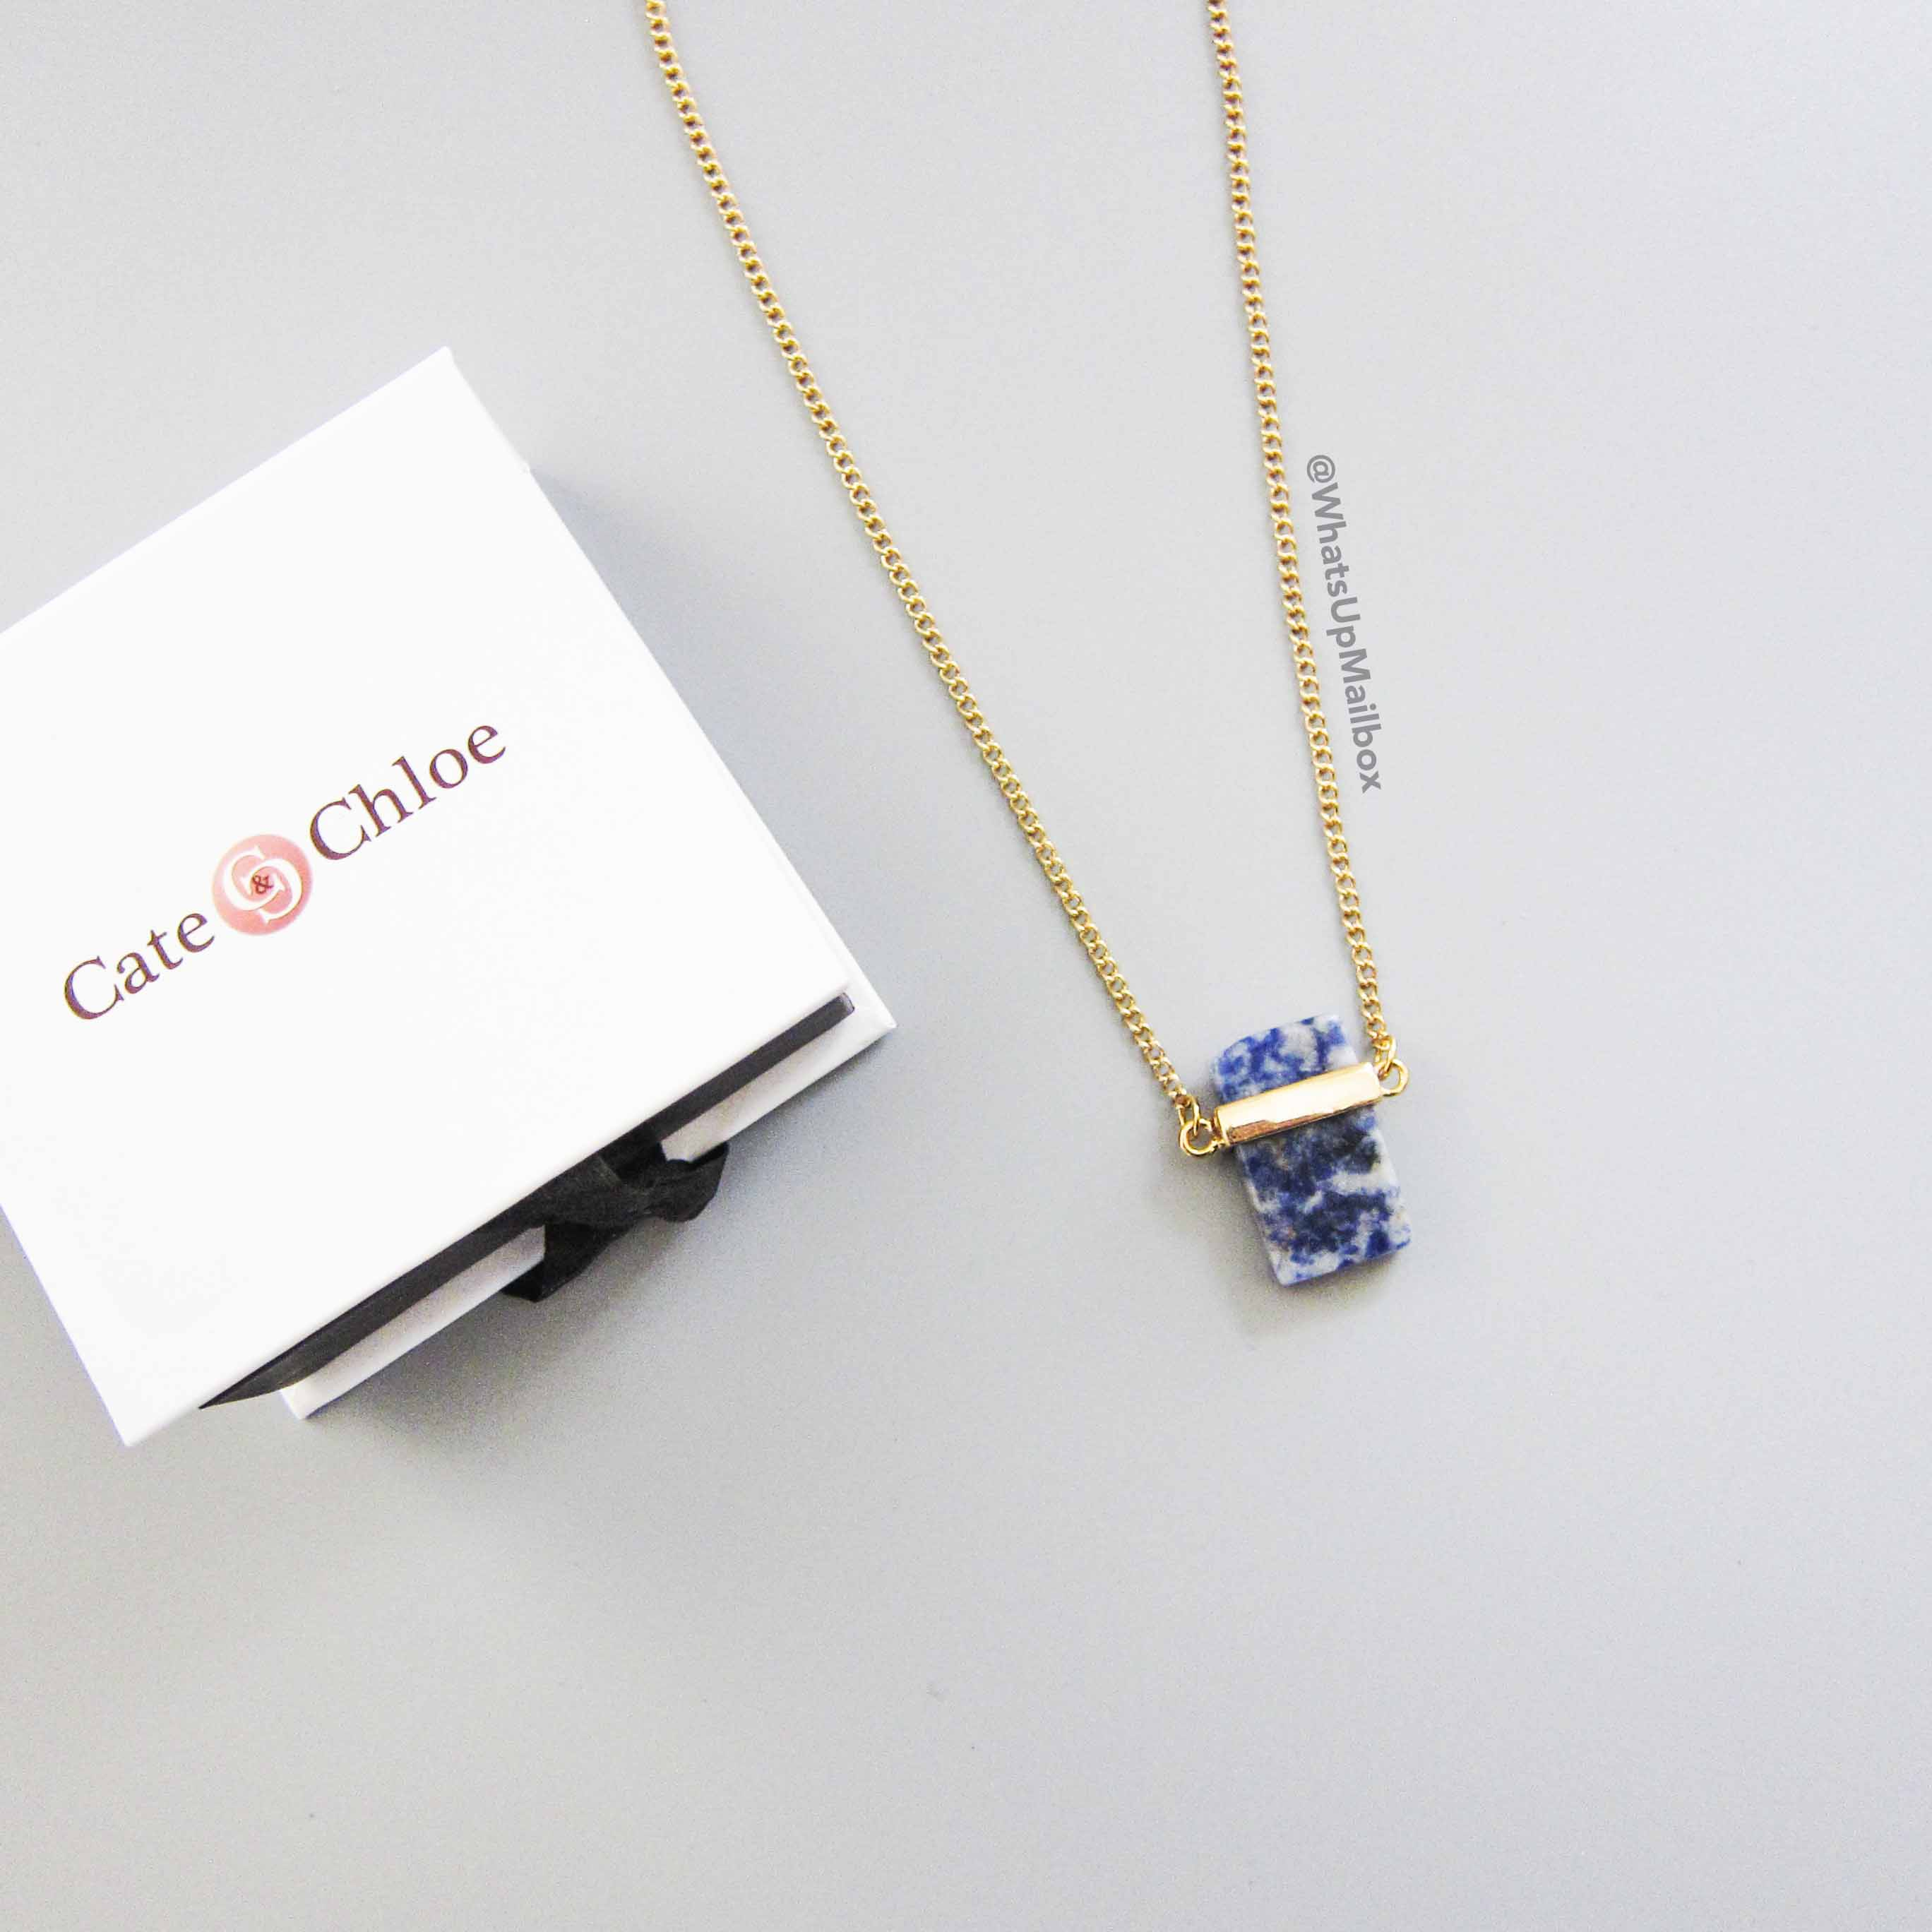 Cate & Chloe Monica Intuition 18K Gold Plated Stone Necklace